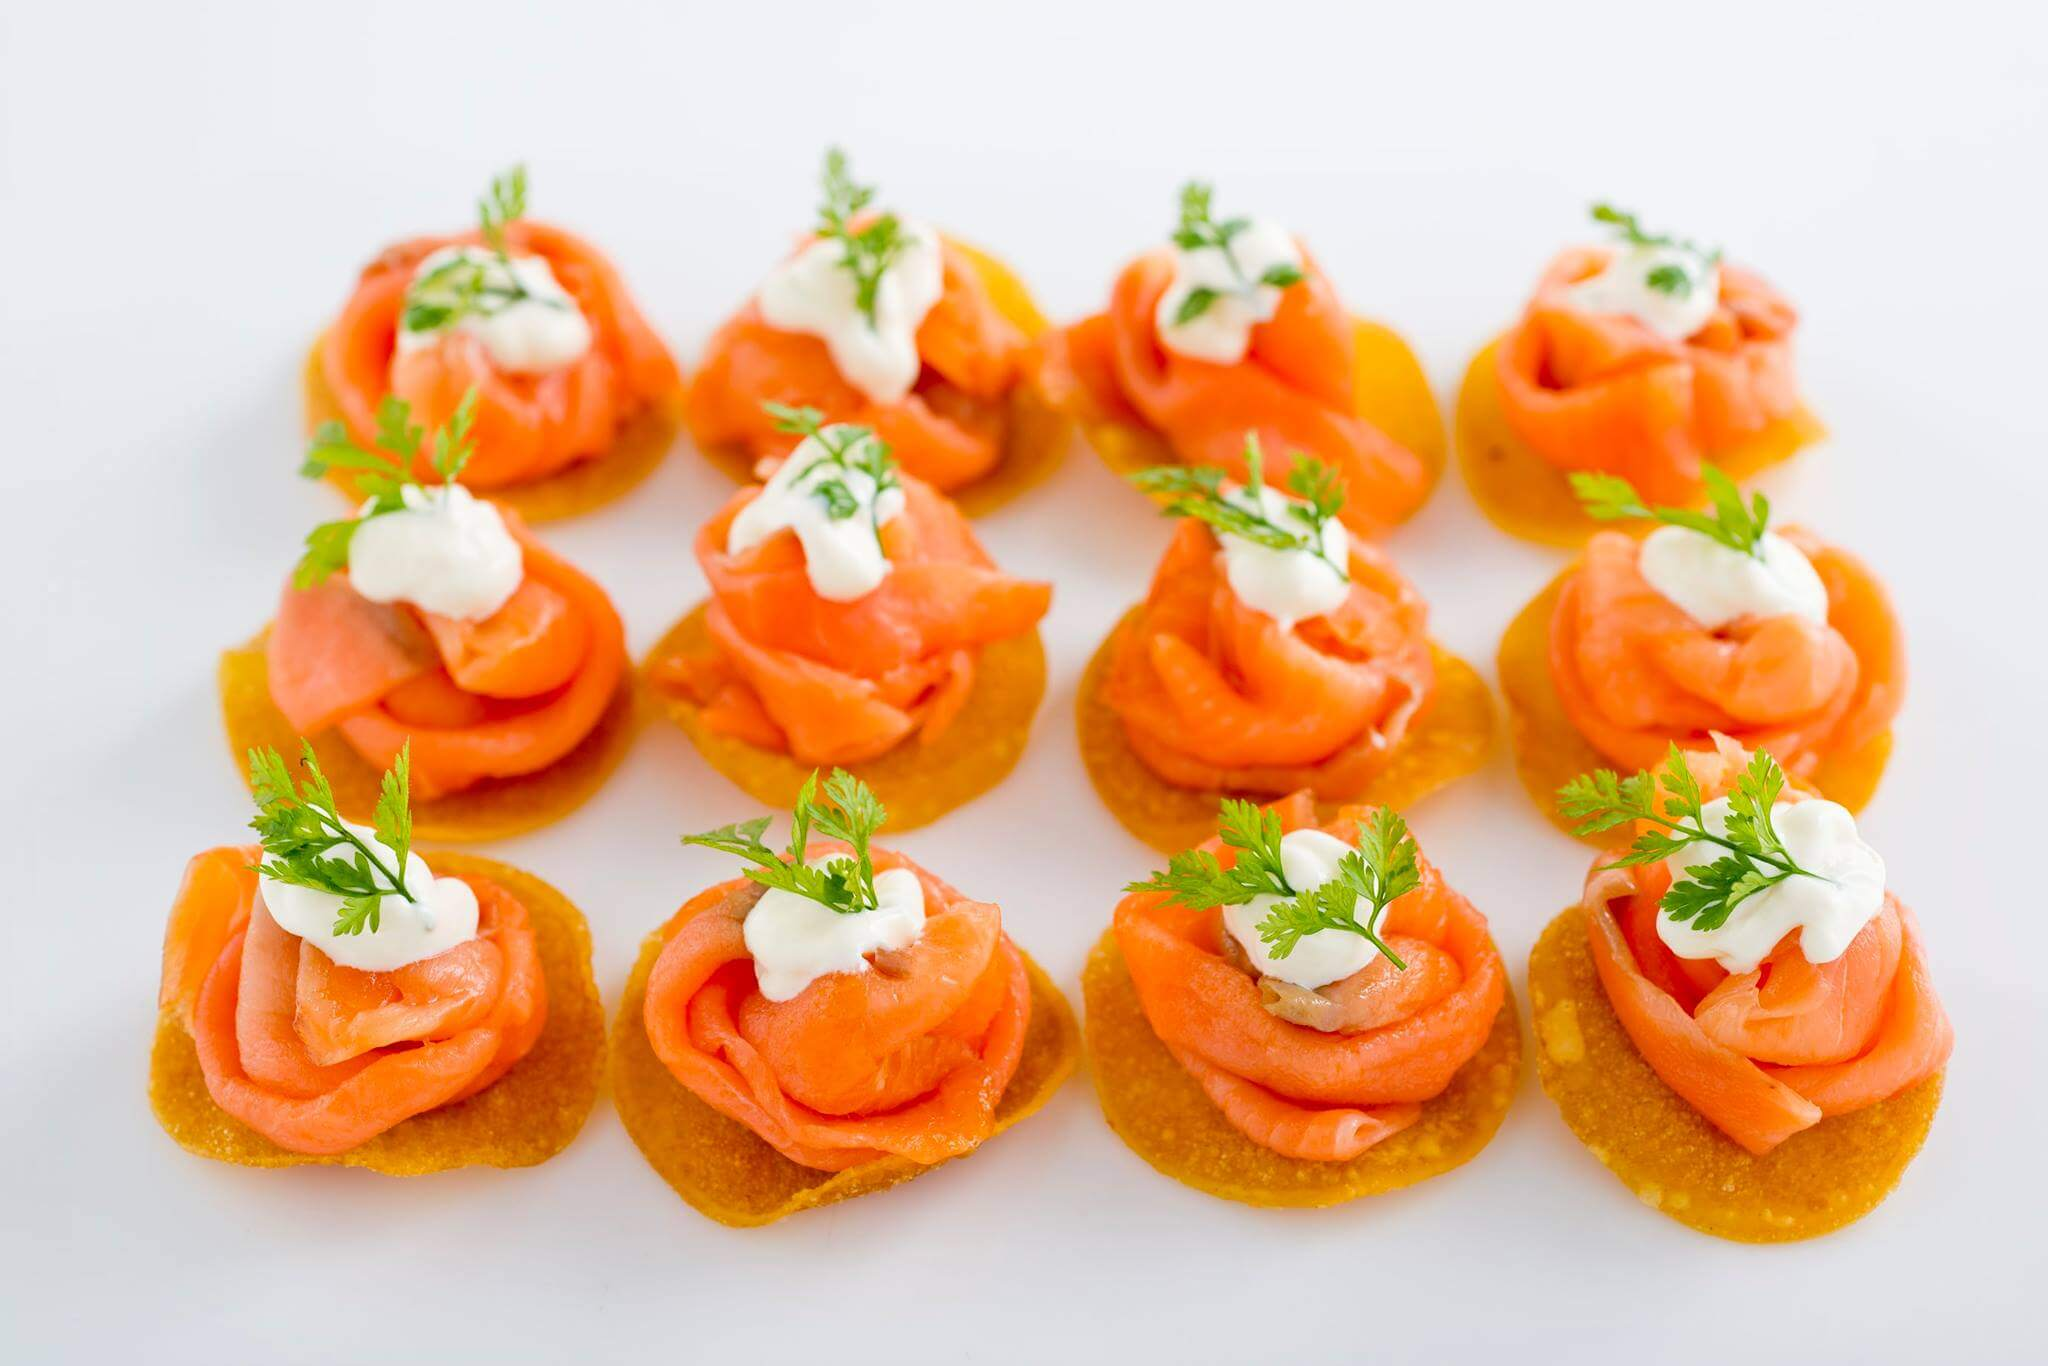 Canape catering Service Singapore - The Rotisserie